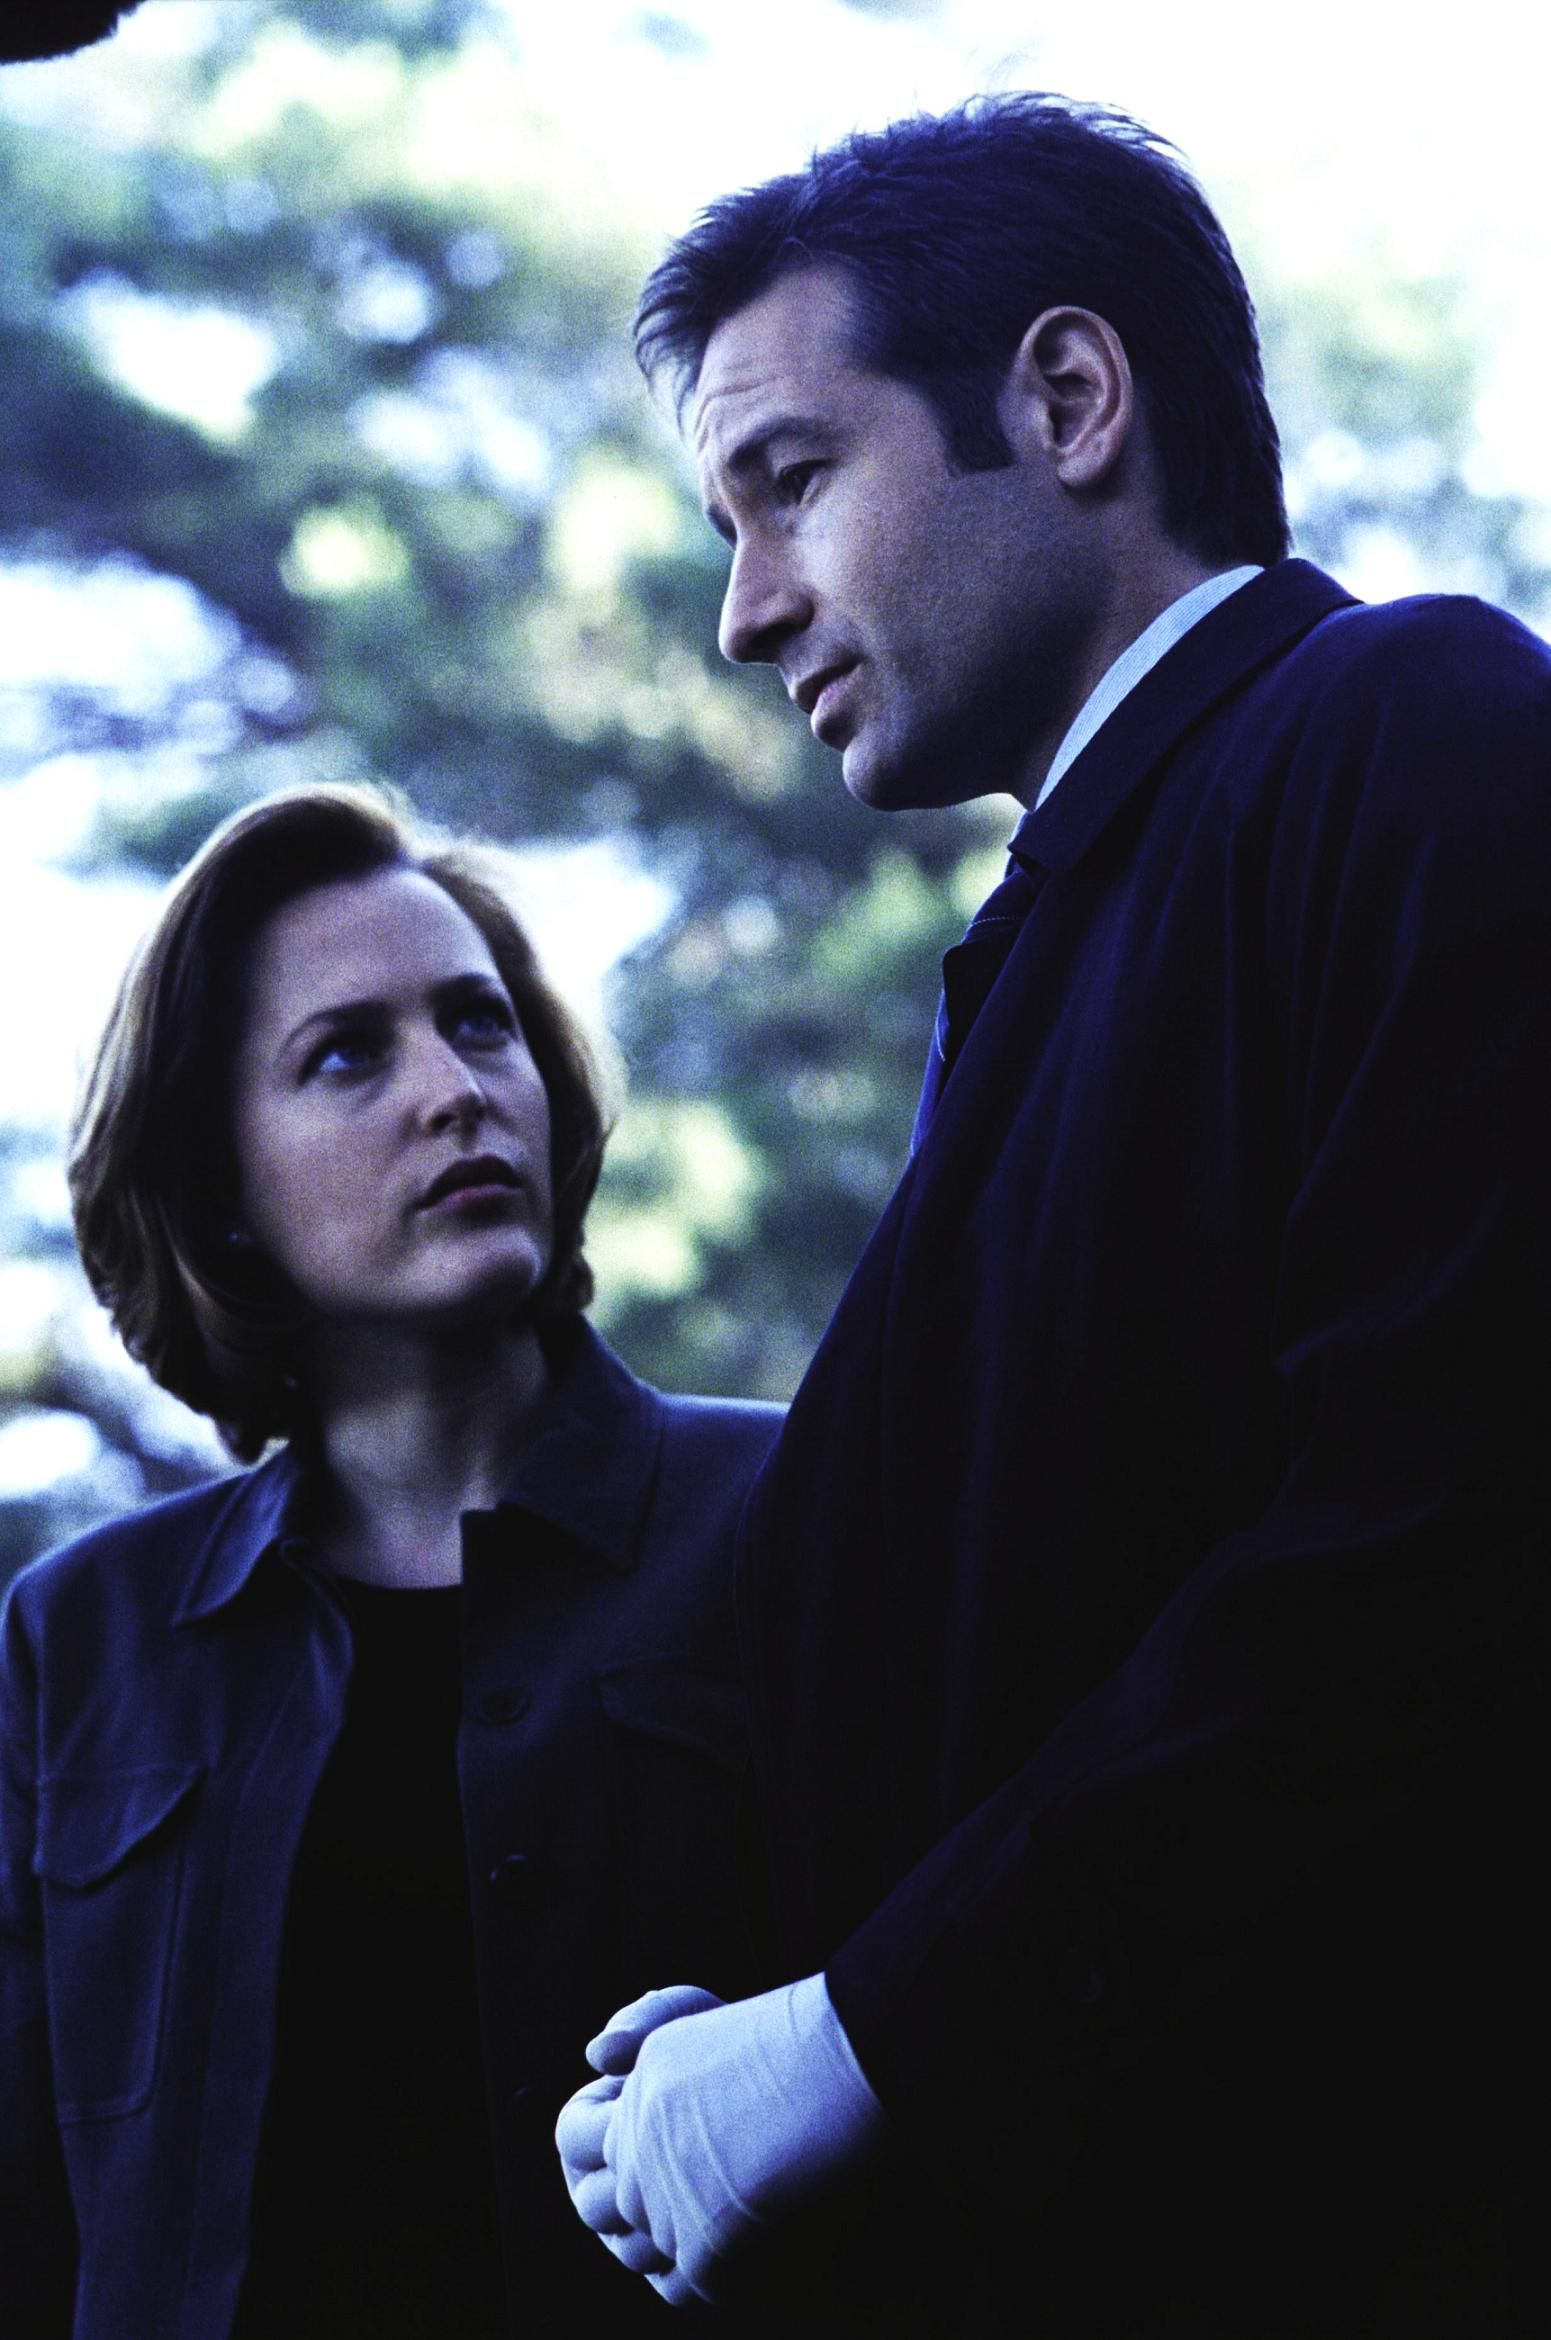 Mulder and Scully - Millenium. Please remain silent while the Spooks is thinking.